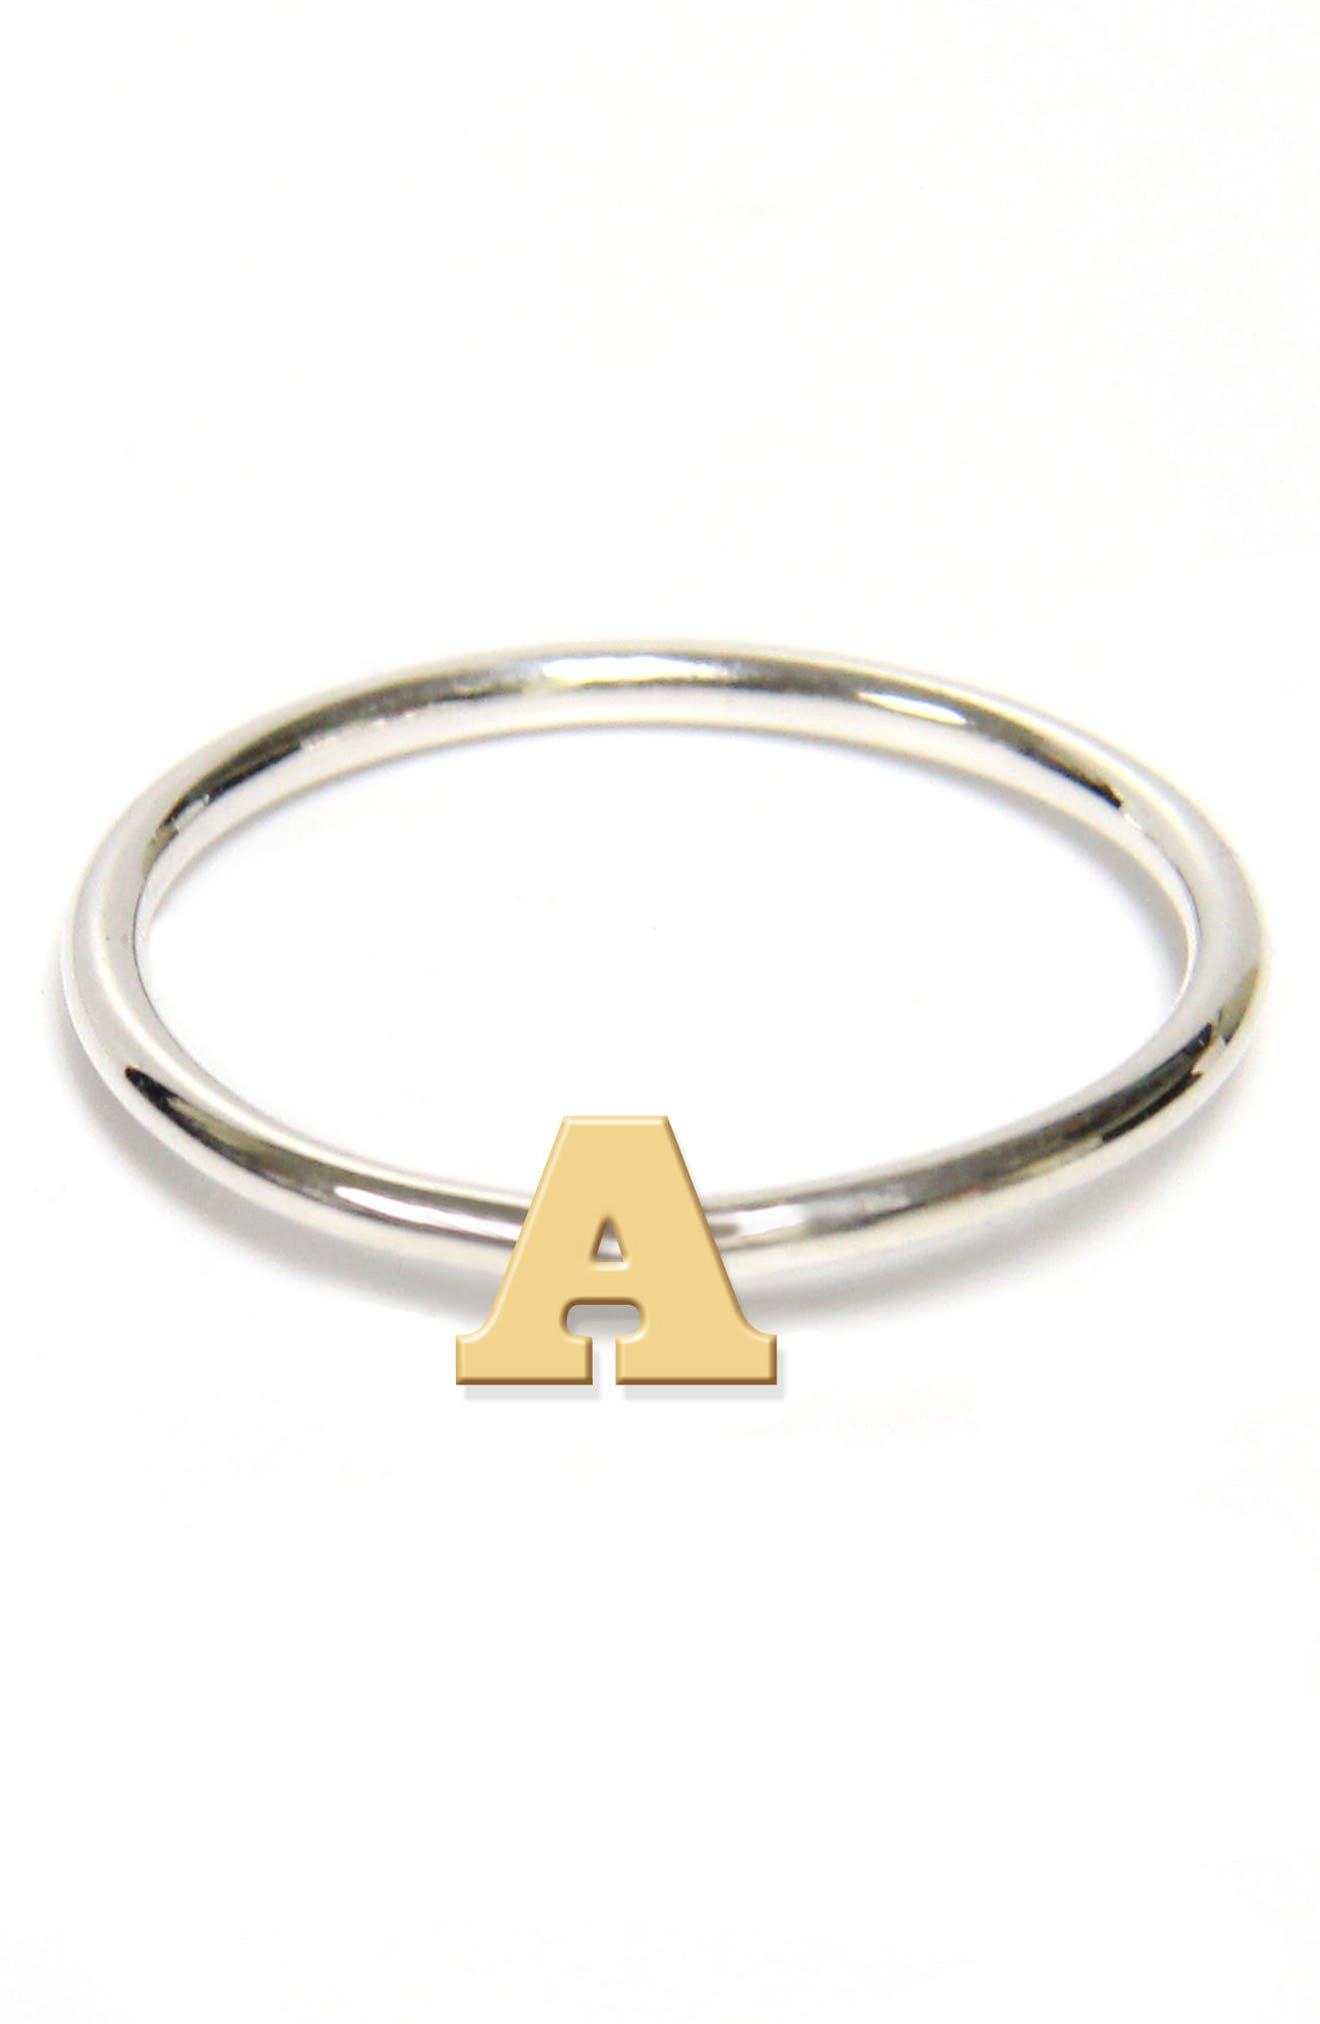 Jane Basch Two-Tone Initial Ring,                         Main,                         color, Gold- A